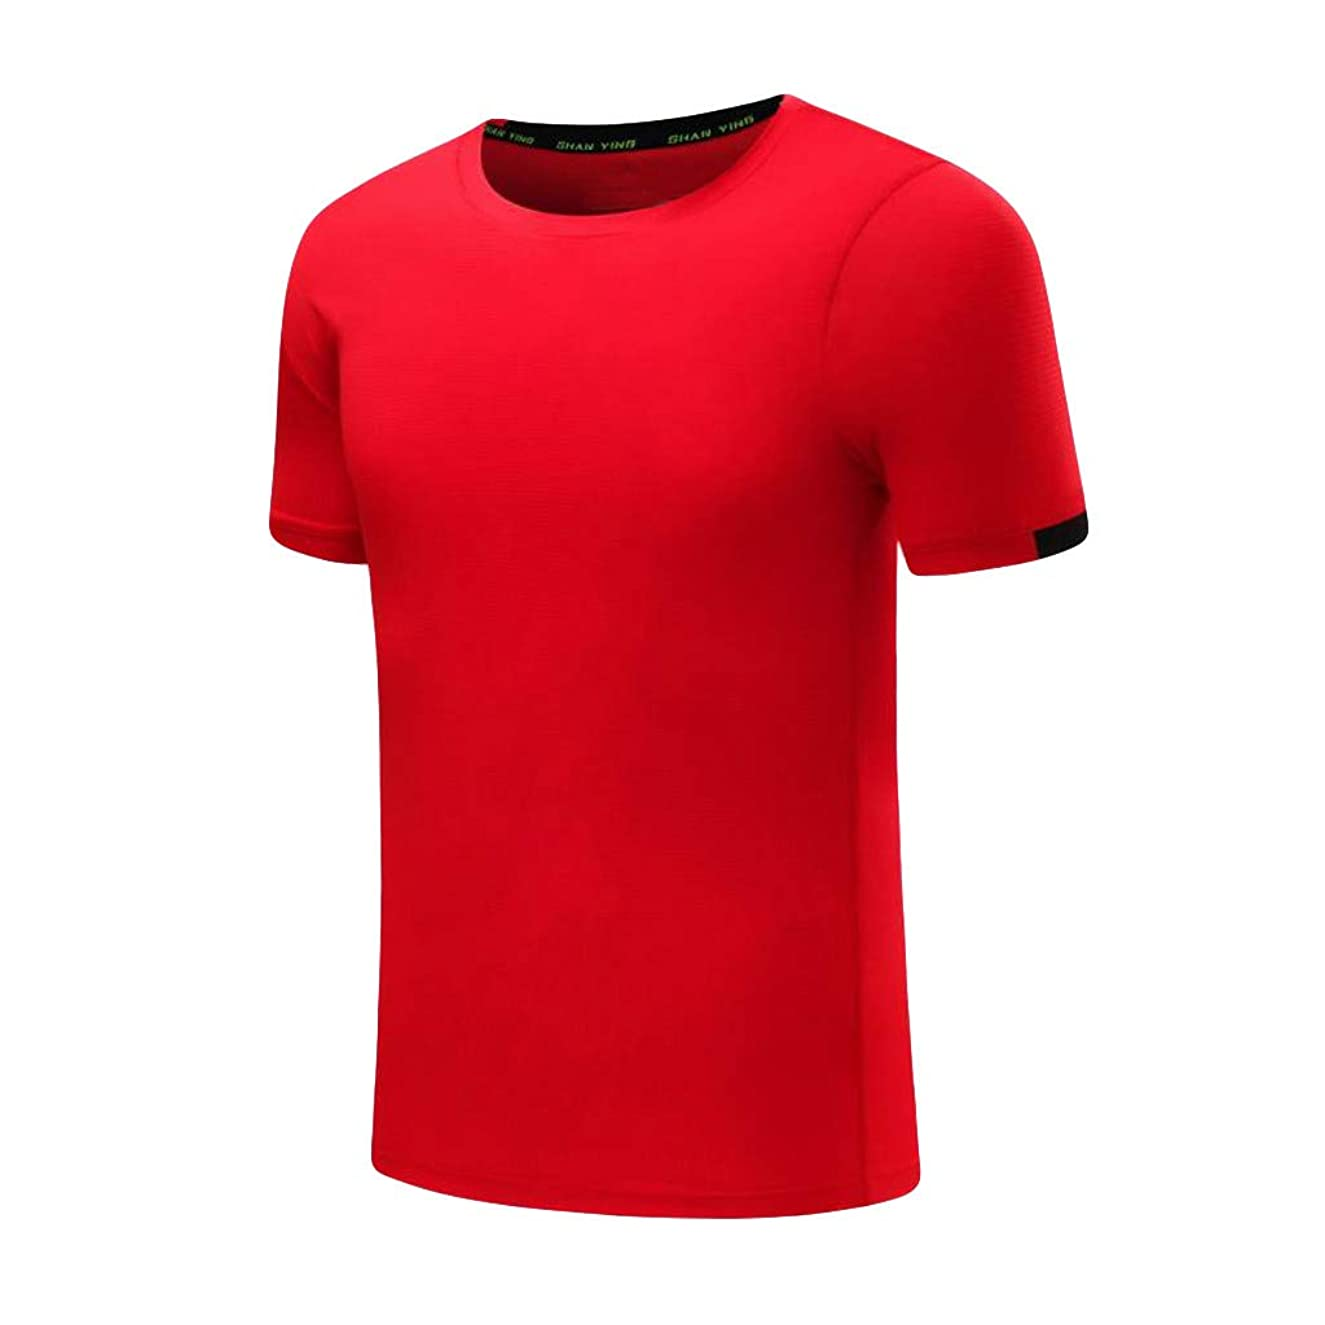 Men's Summer Casual O-Neck T-Shirt Fitness Sport Fast-Dry Breathable Top Blouse